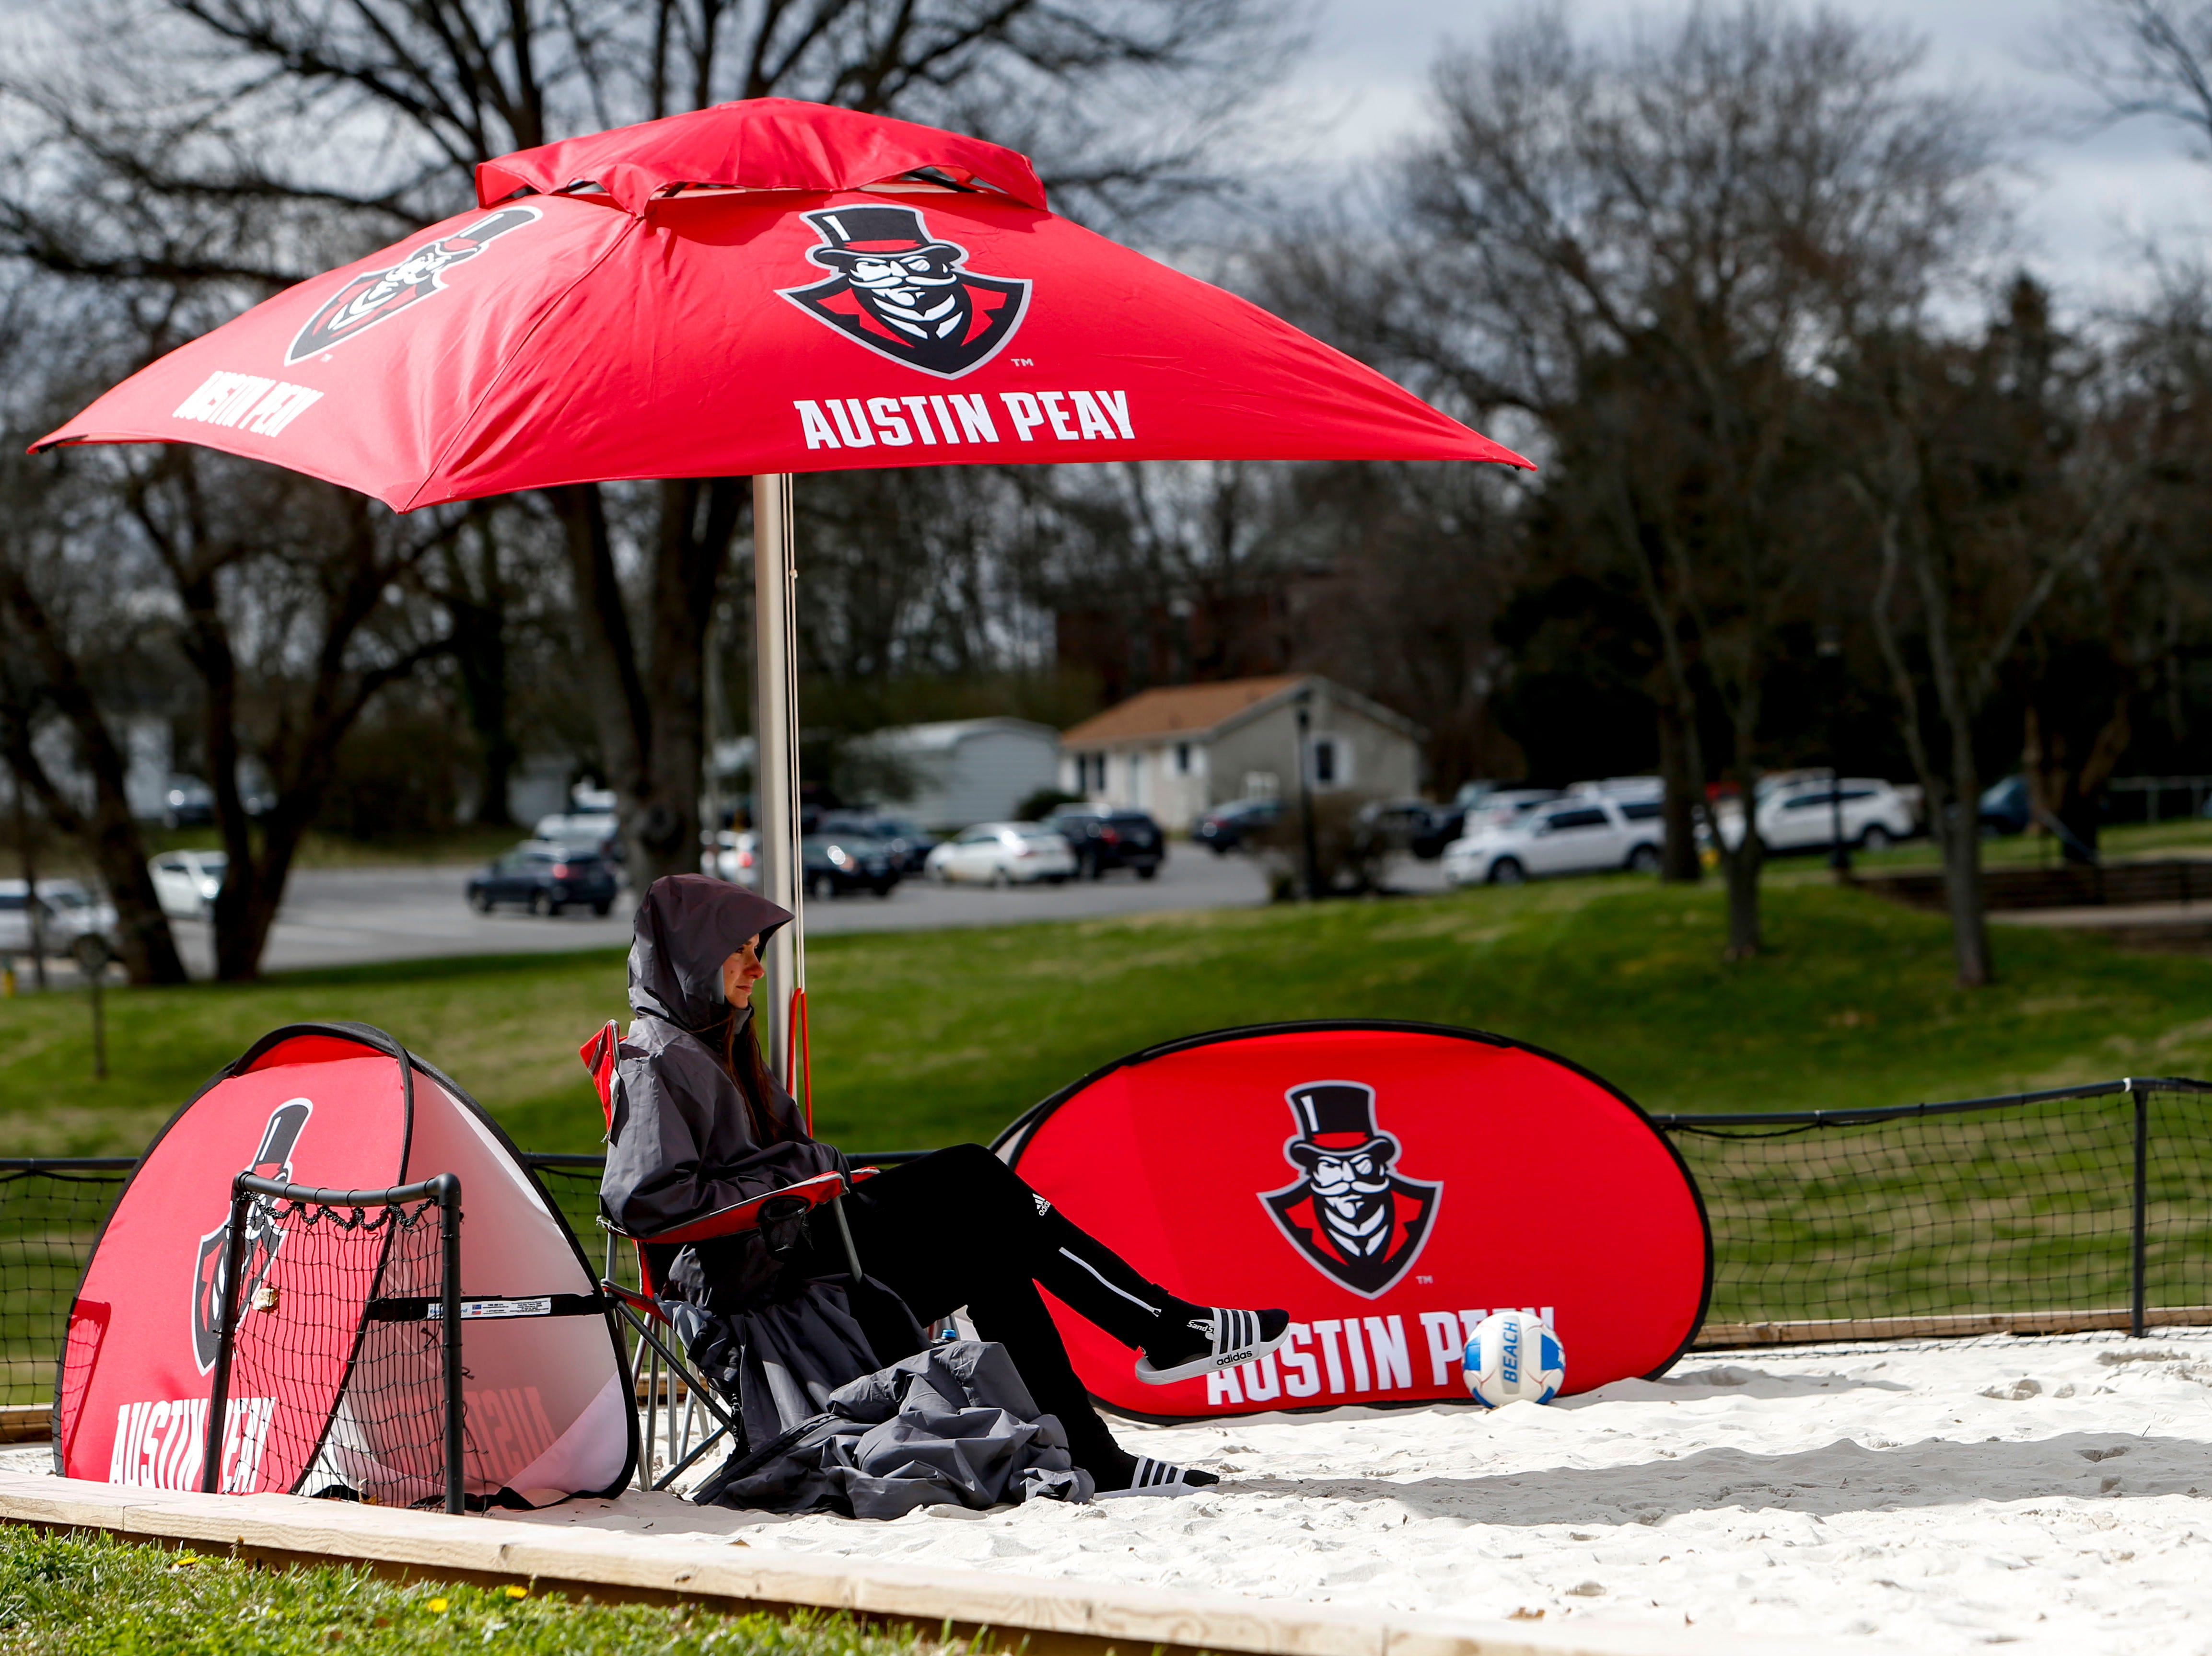 A coach watches from the sideline underneath the shade of an umbrella at Winfield Dunn Center lawn in Clarksville, Tenn., on Friday, March 15, 2019.